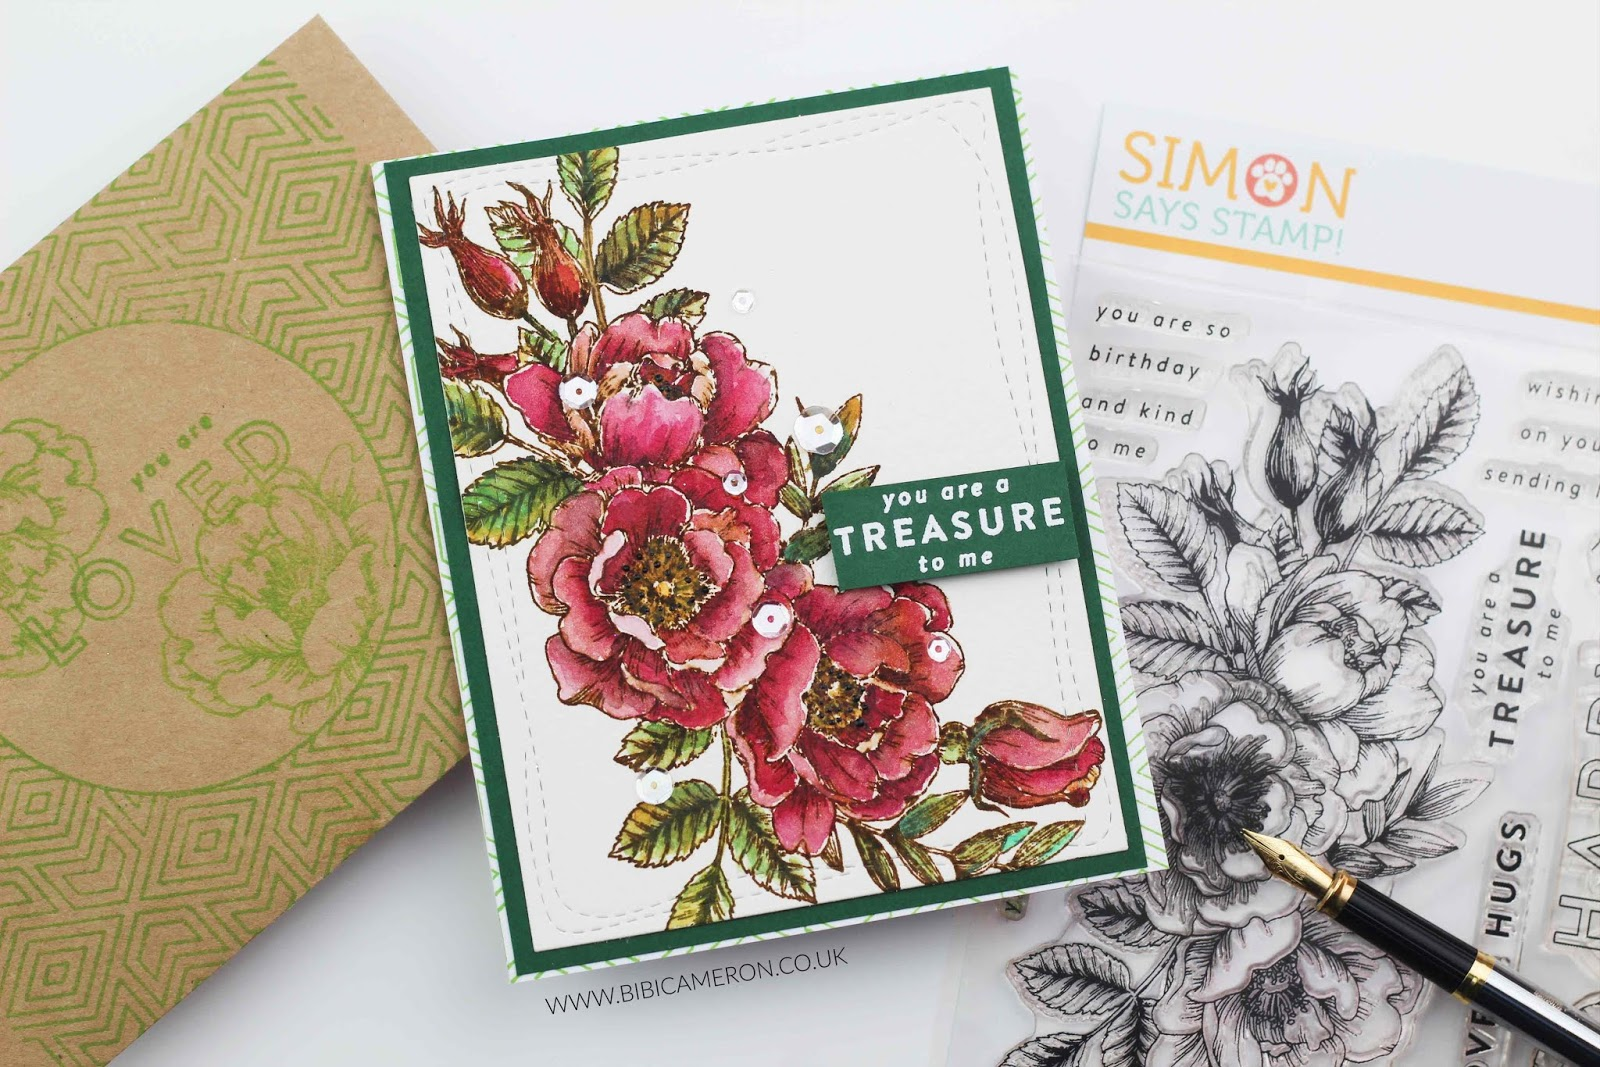 Beautiful Flowers by Simon Says Stamp!